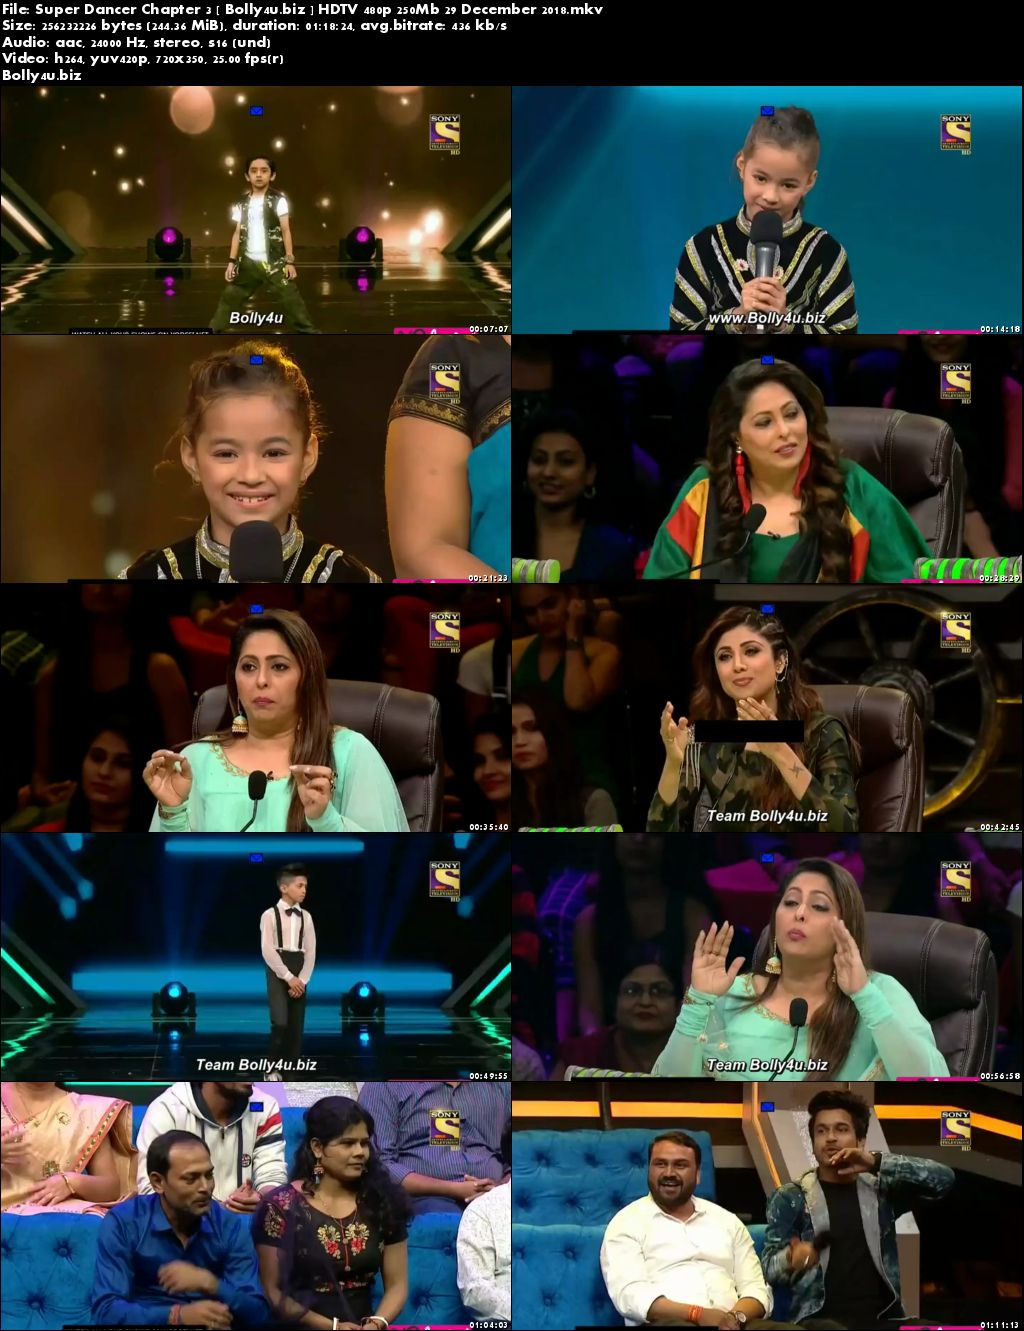 Super Dancer Chapter 3 HDTV 480p 250Mb 29 December 2018 Download